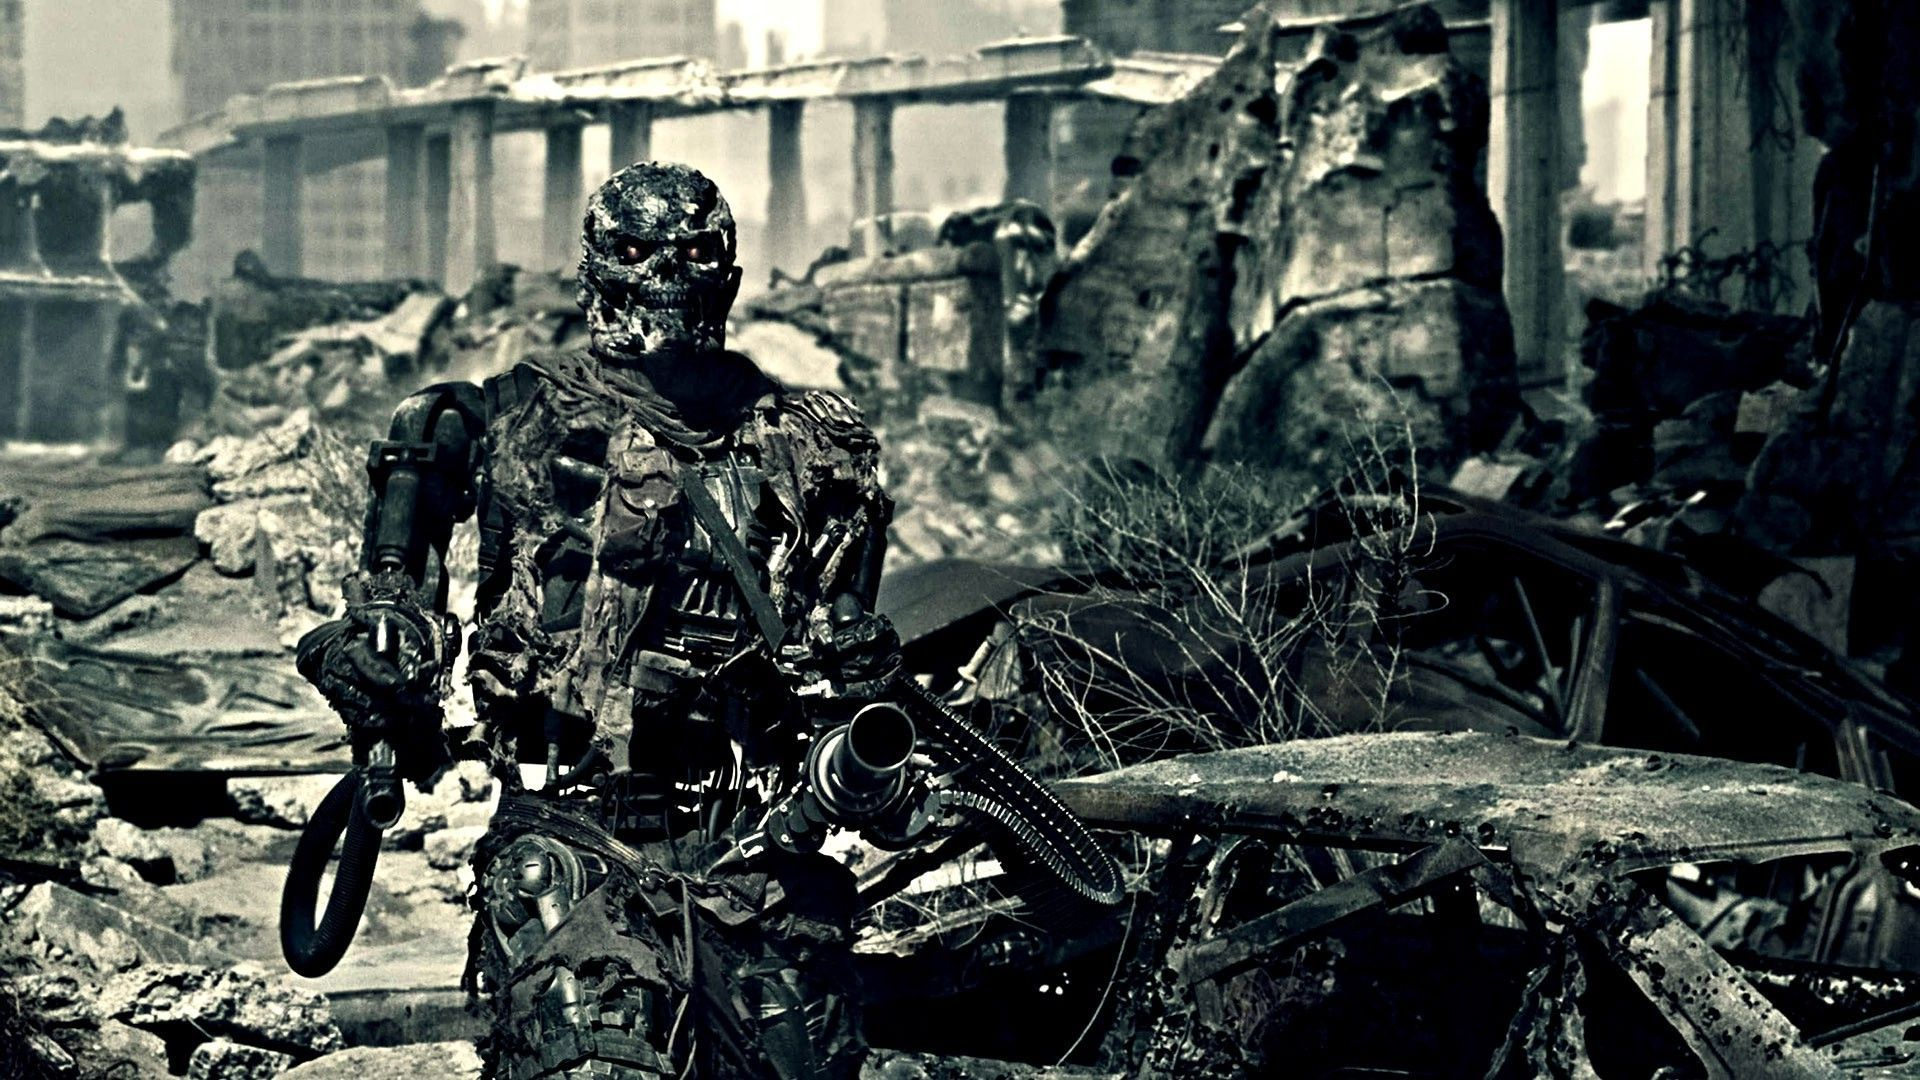 terminator salvation desktop wallpaper Terminator wallpapers for free download we have about (24) terminator wallpapers in jpg format wallpaper terminator, terminator wallpaper, terminator, terminator salvation, terminator.